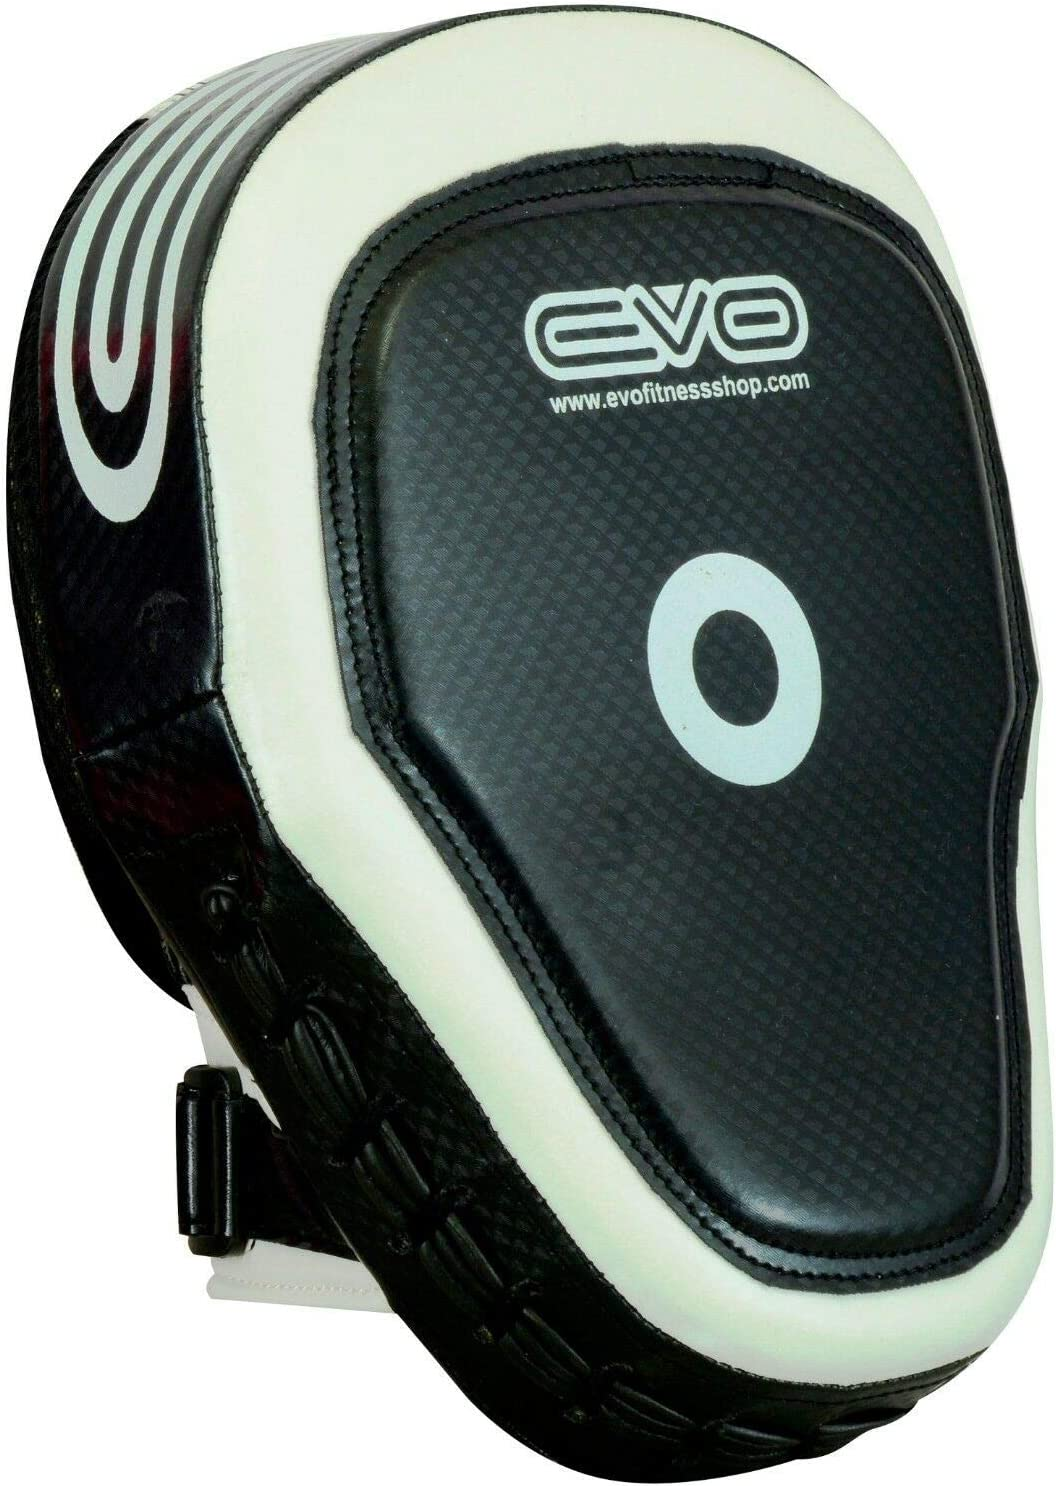 EVO Fitness Curved Boxing MMA Focus Pads Set Muay Thai Martial Arts Training Pads UFC PRO